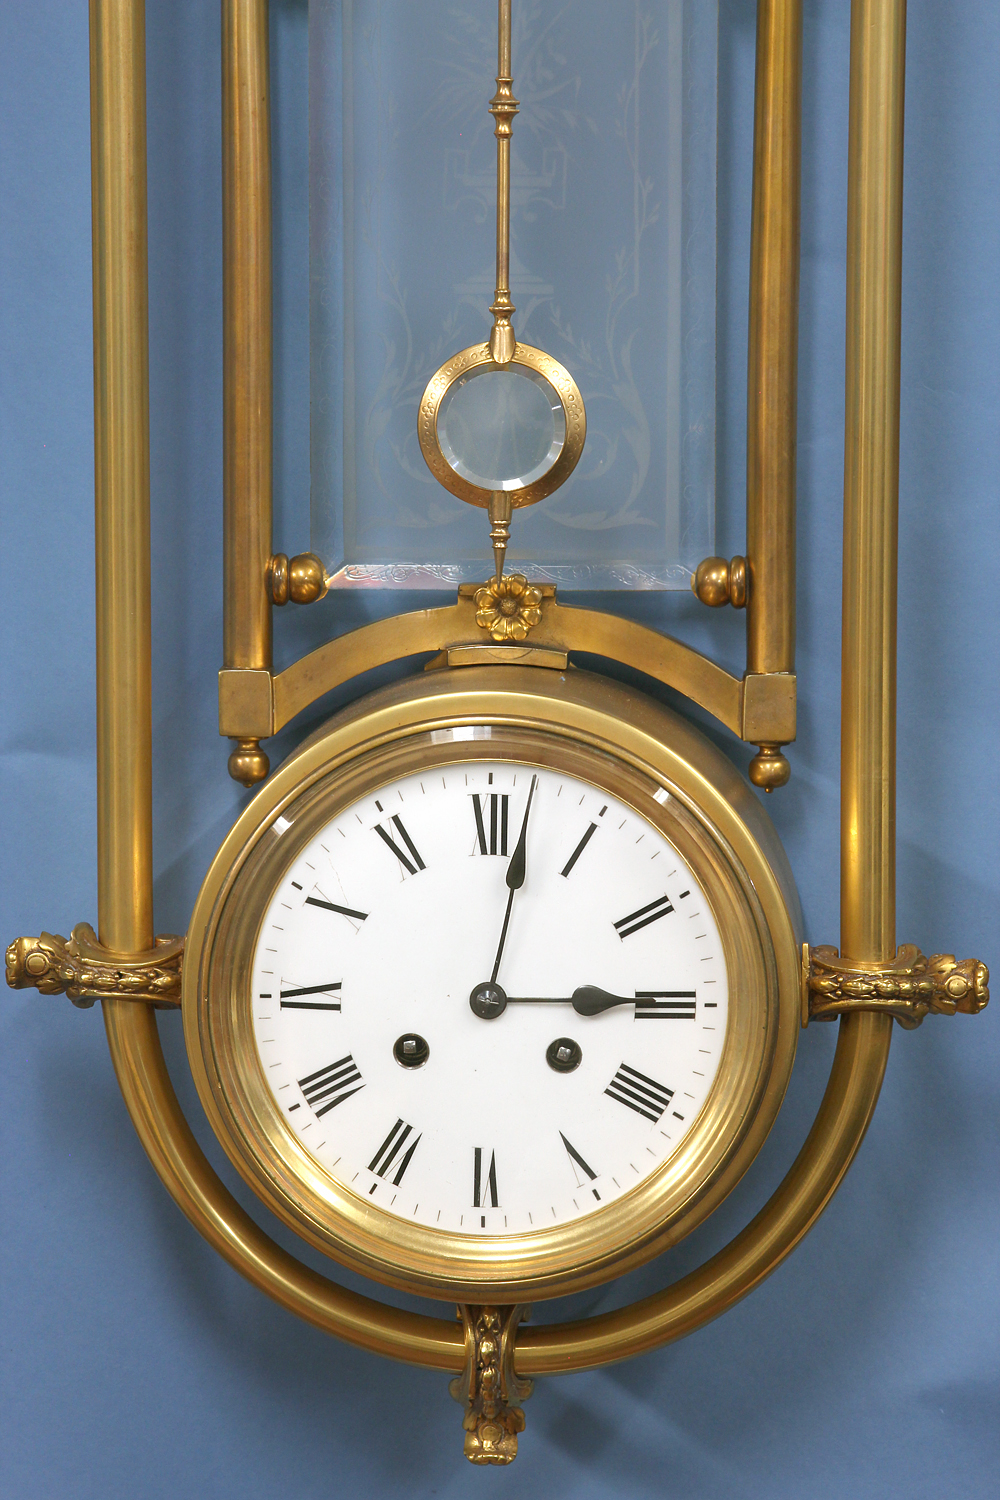 c.1875 Rare Guilmet Mystery Wall Clock.